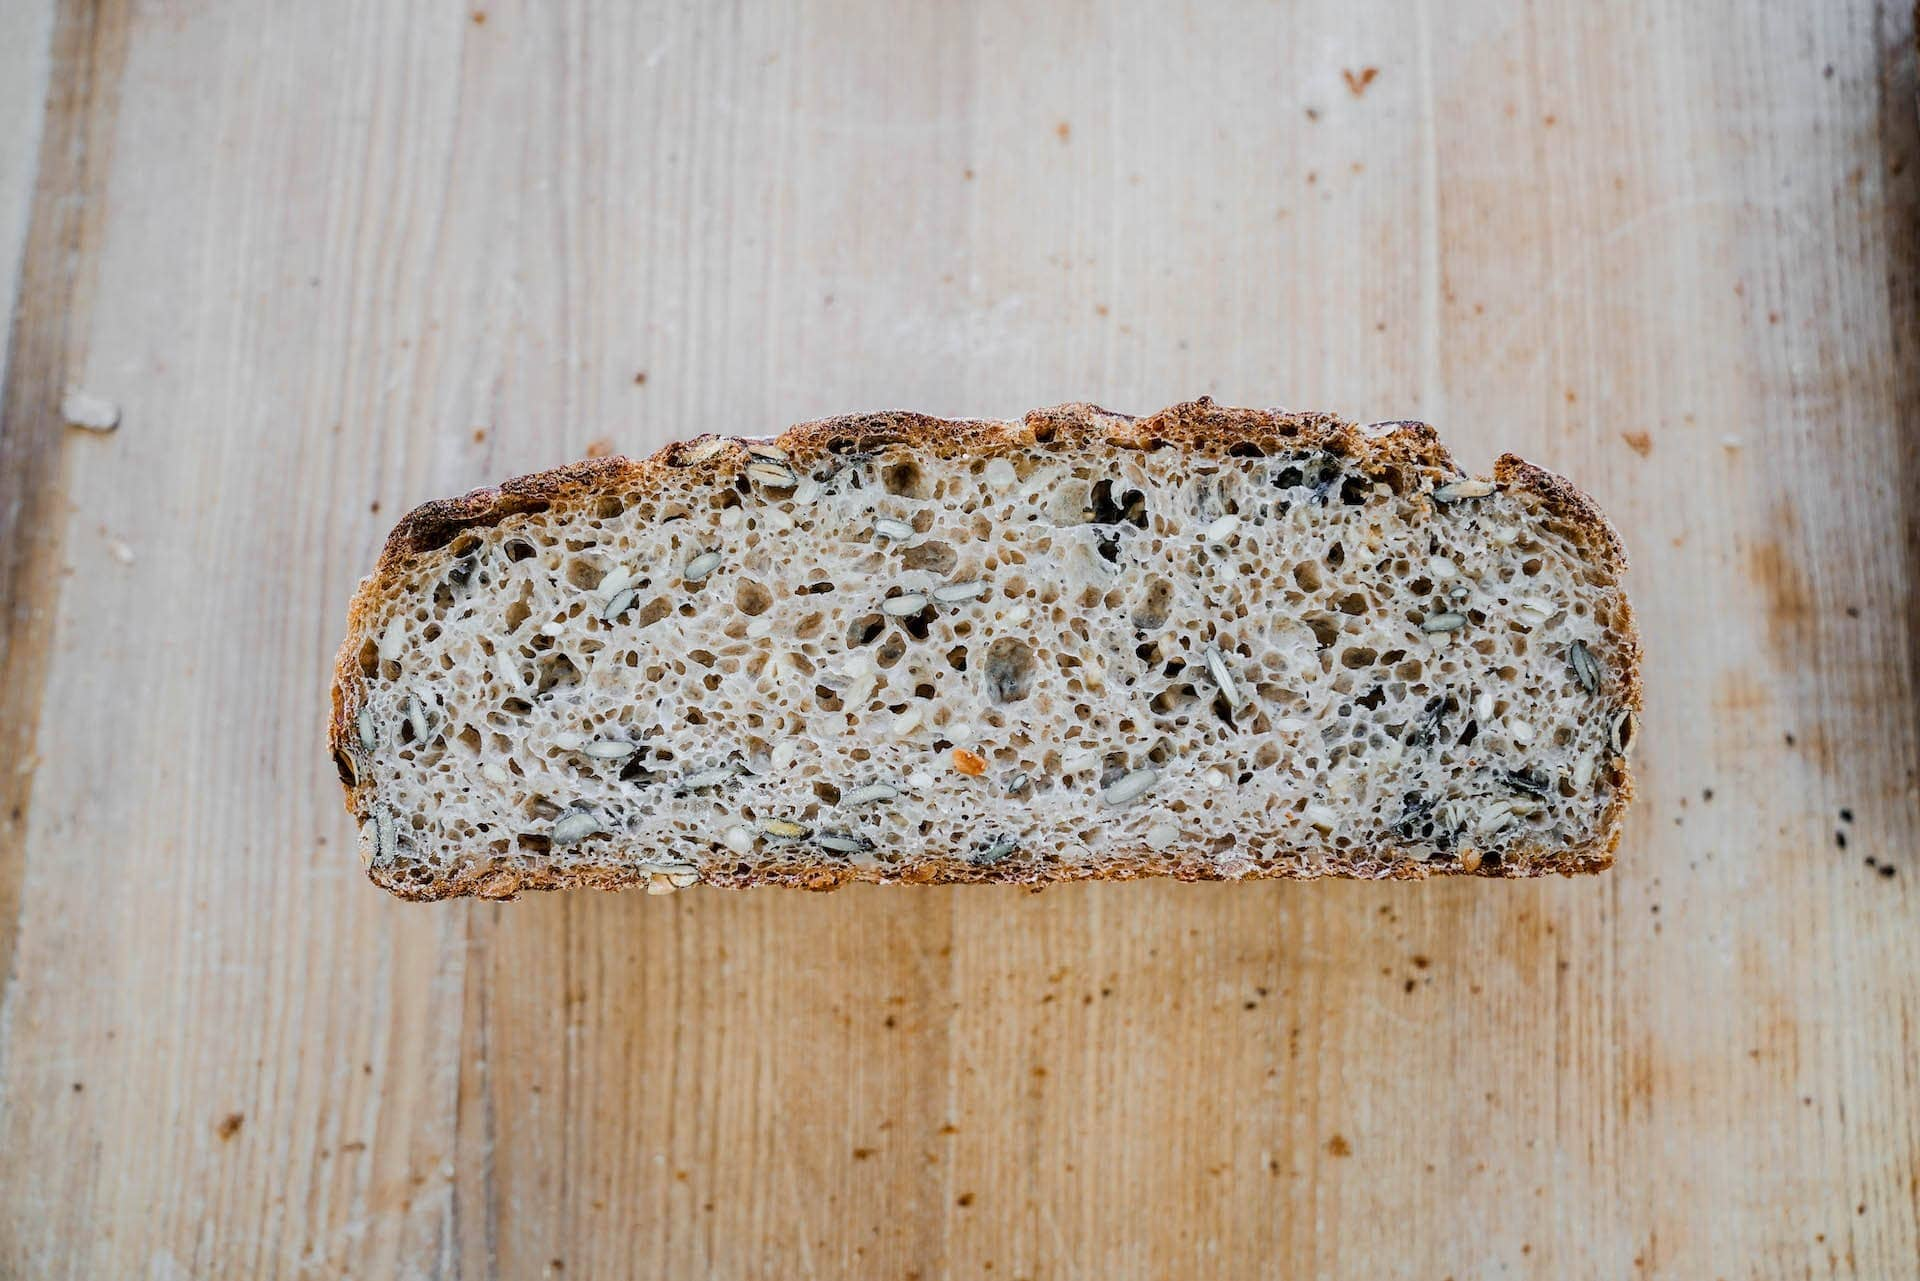 pain-campagne-graines-tranche-b2b-shkop